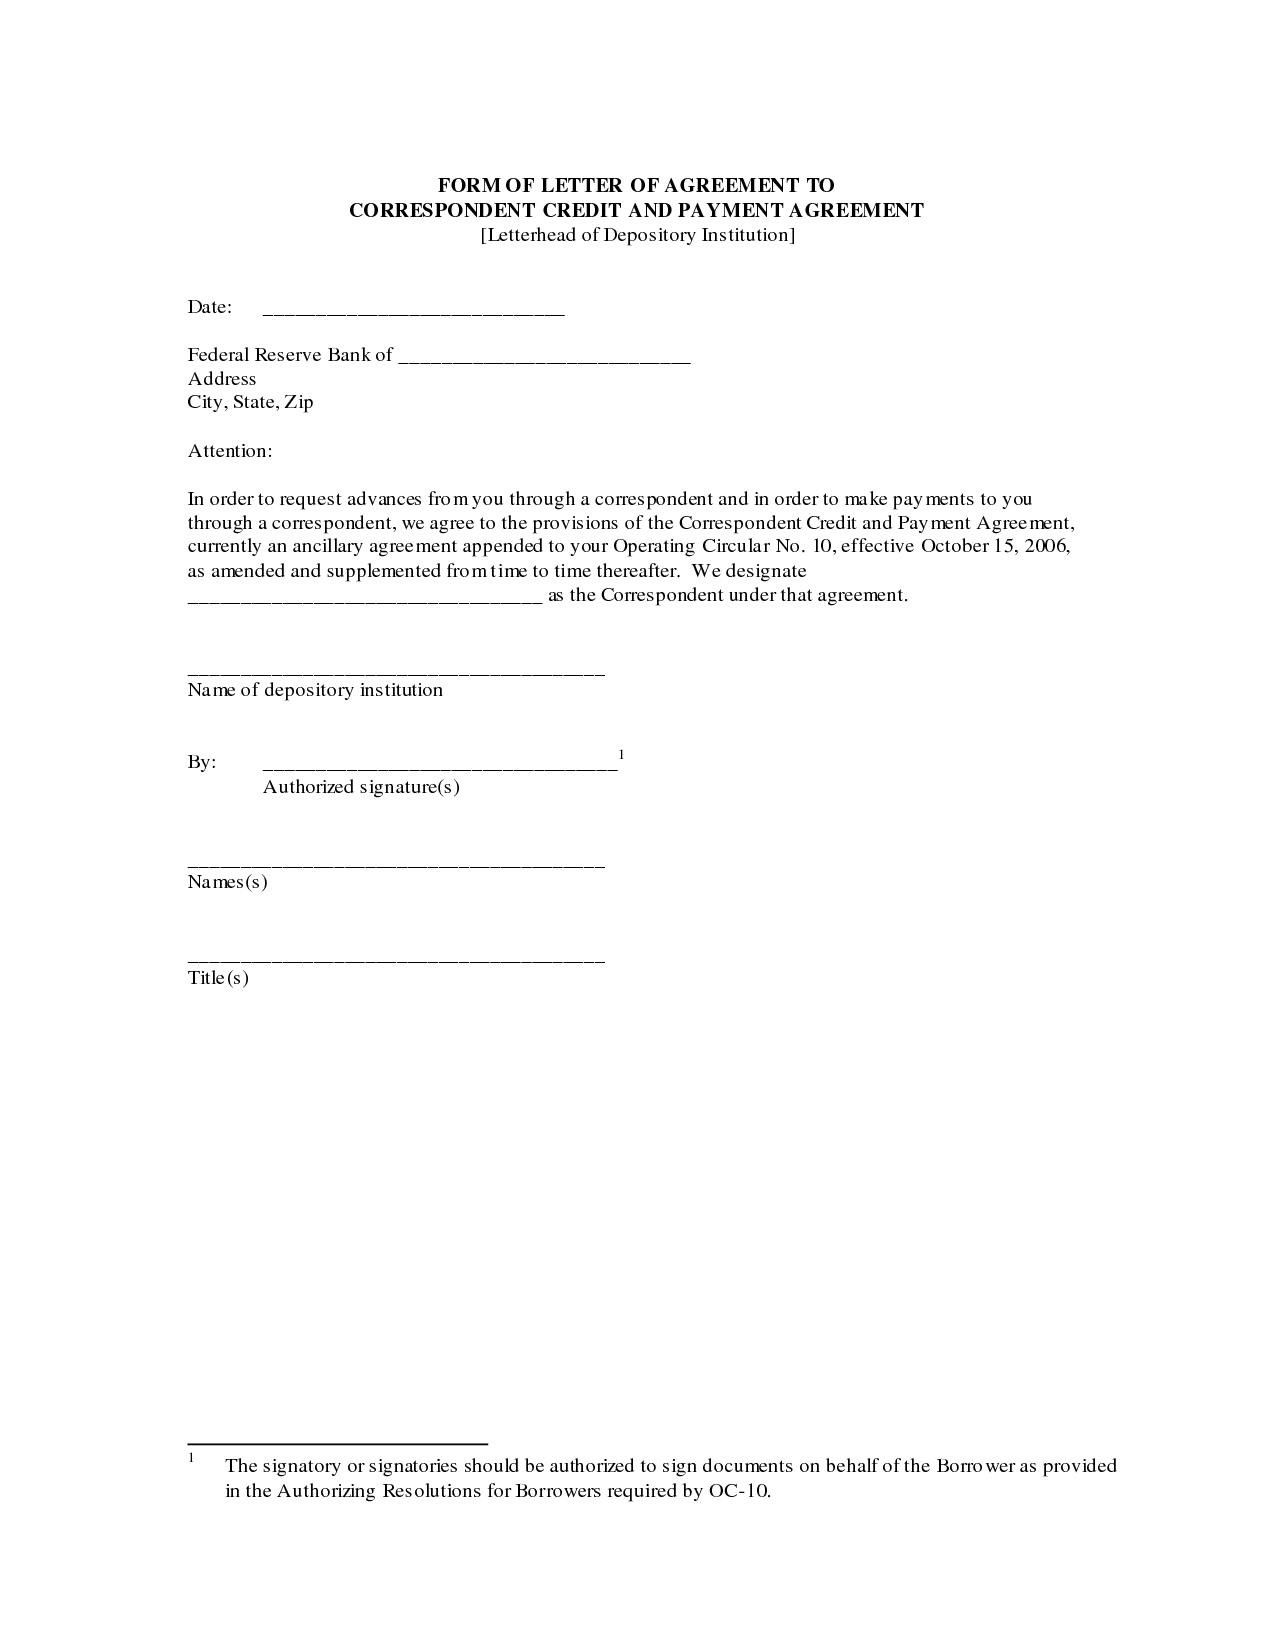 Payment Agreement Form Template  Besttemplates  Best